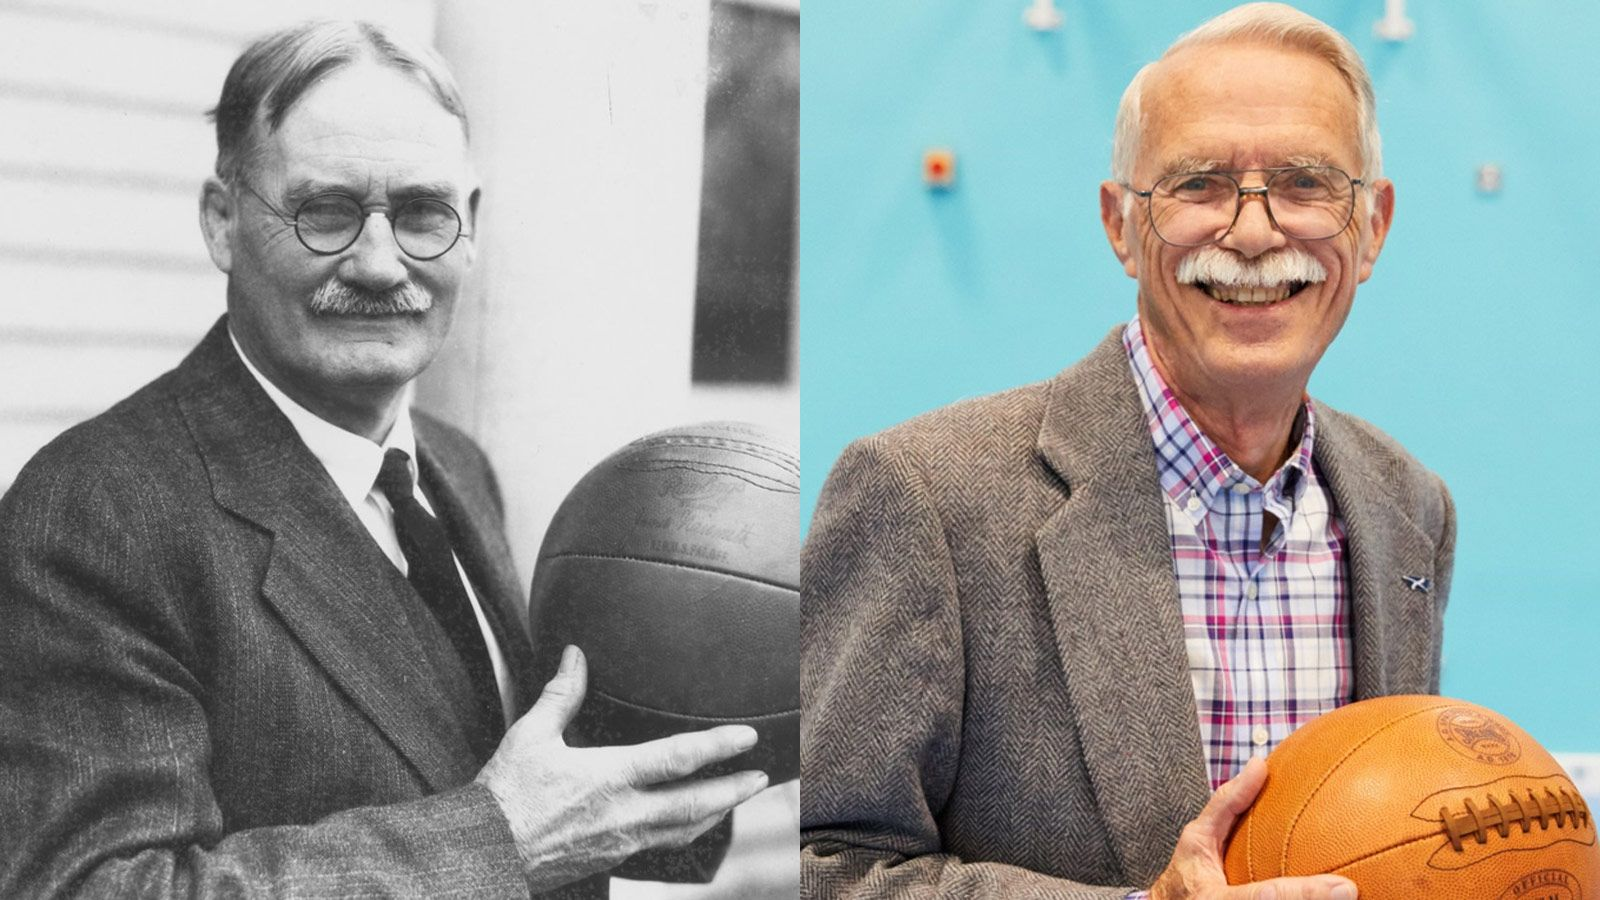 Dr James Naismith S Invention Of Basketball Influenced By